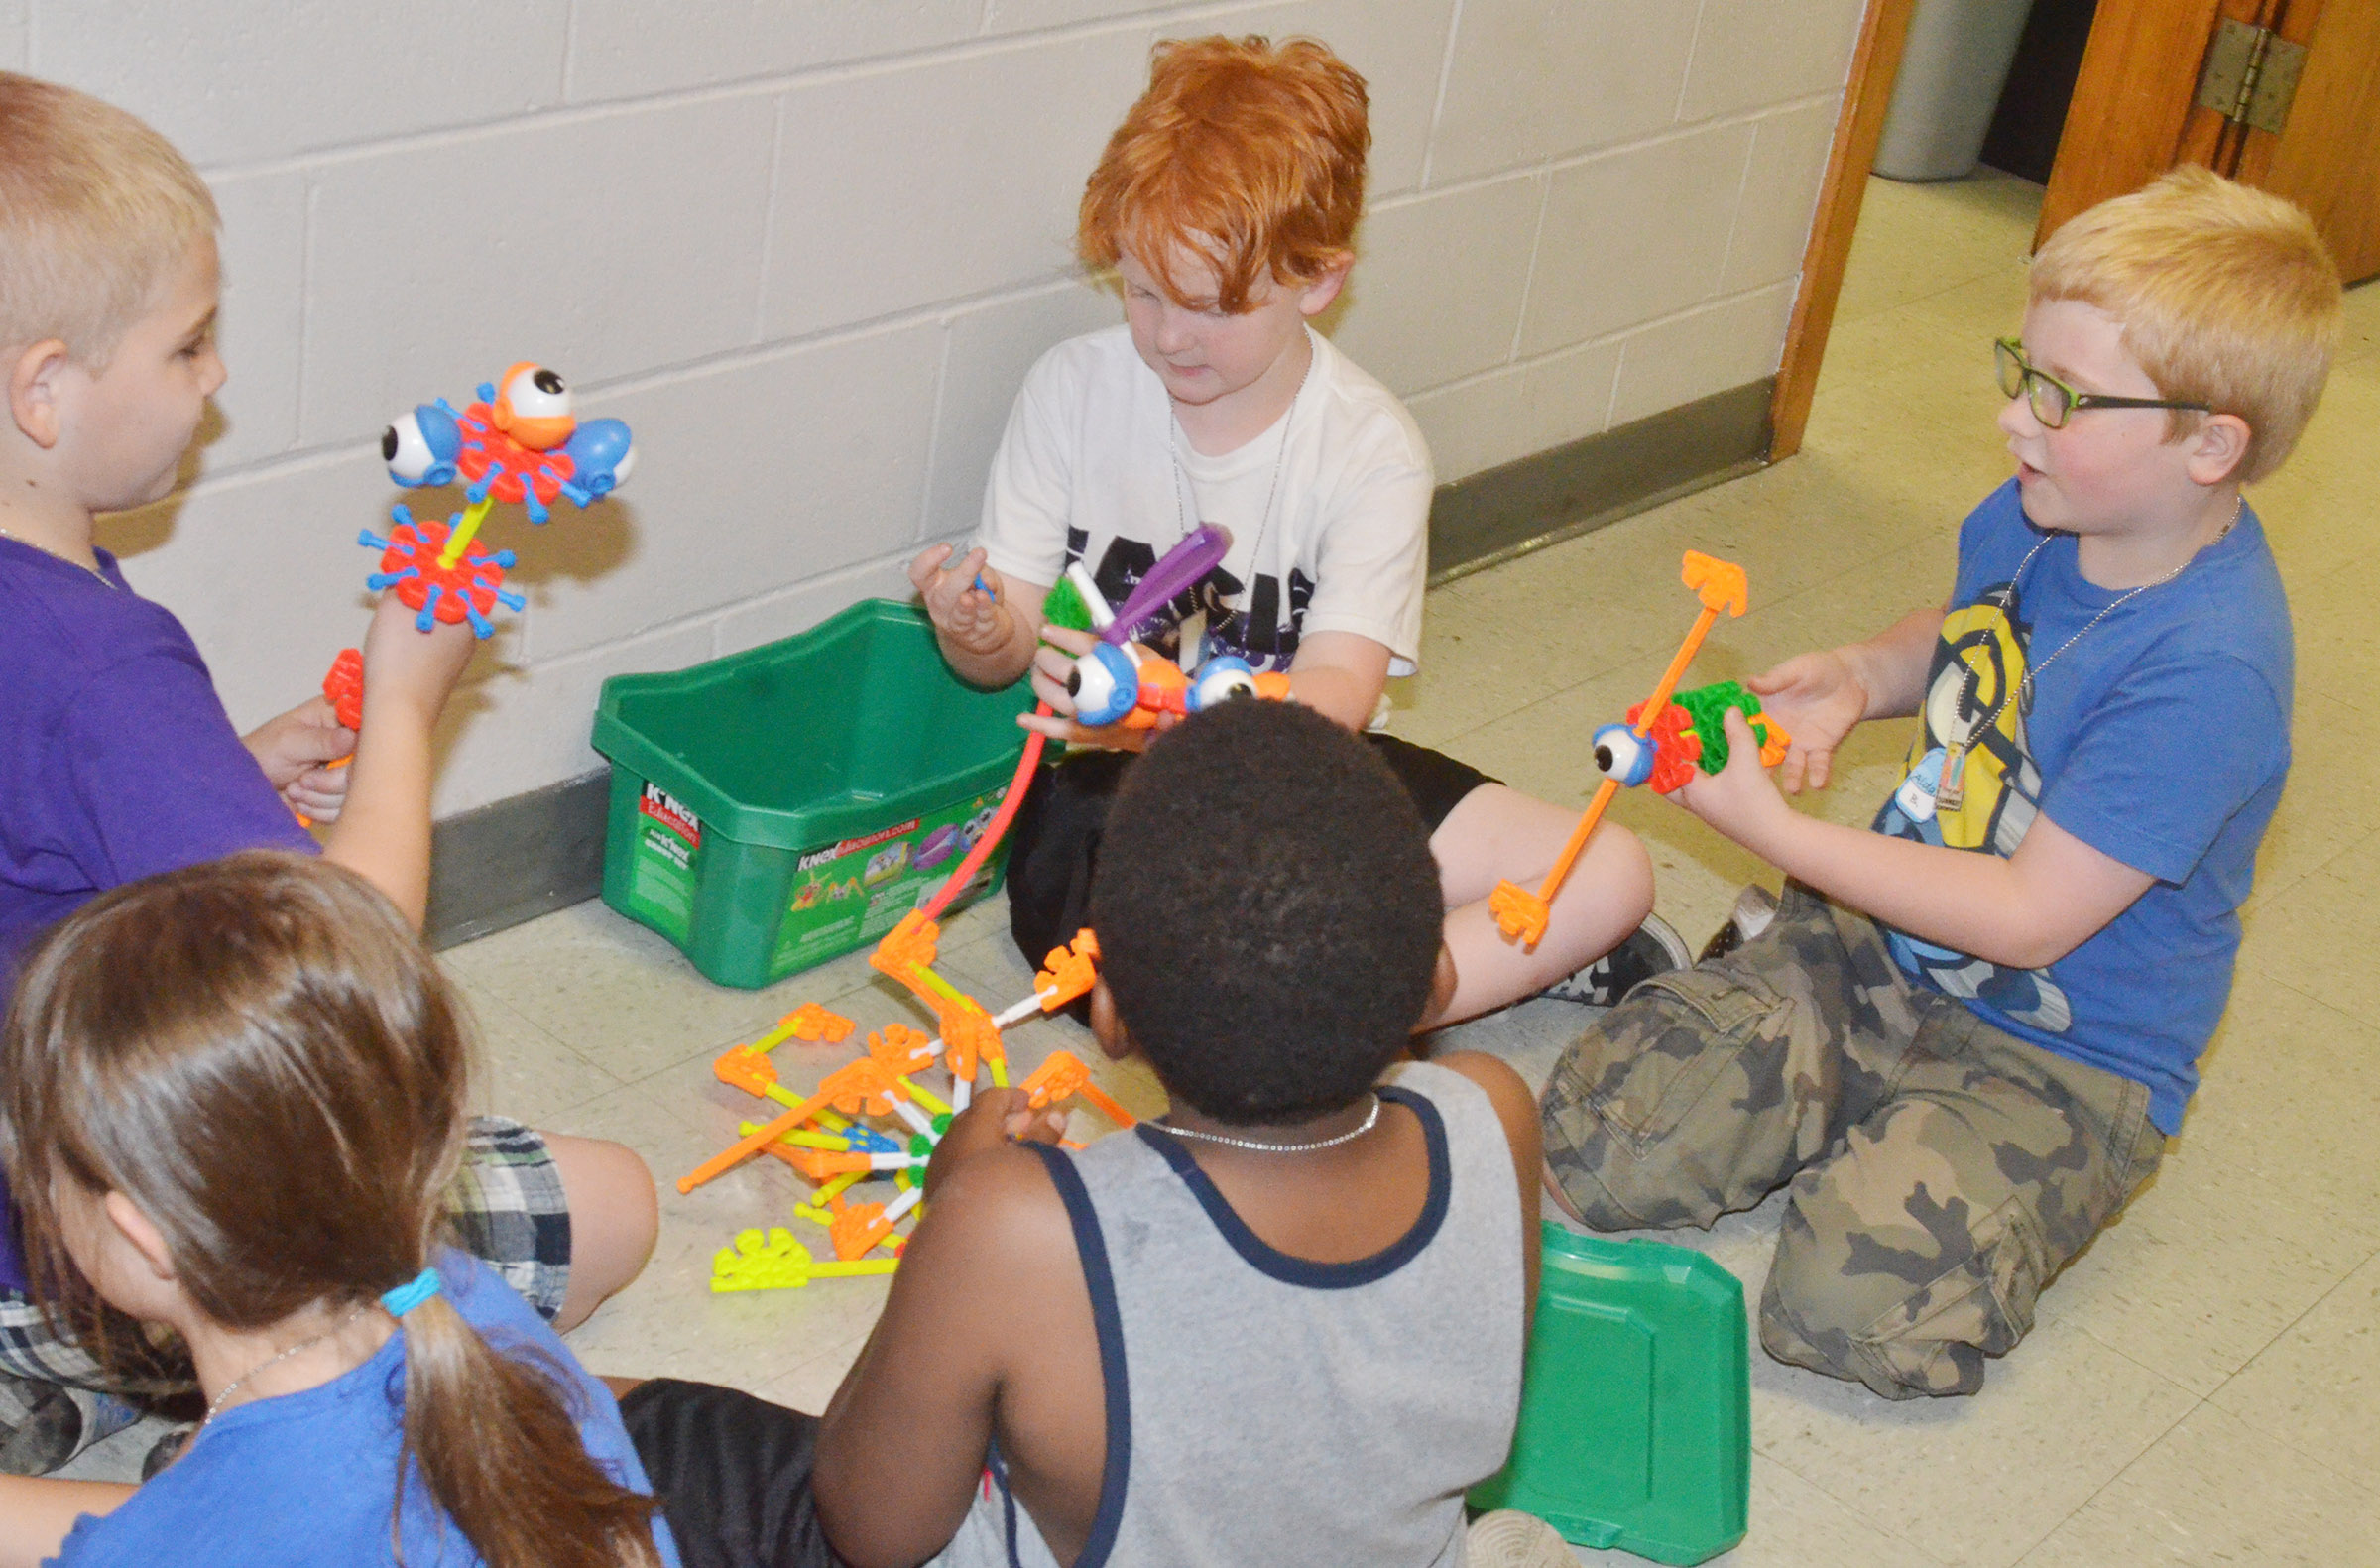 From left, CES second-graders Joseph Greer, Gavin Martin and Aidan Bowles and their classmates build together.